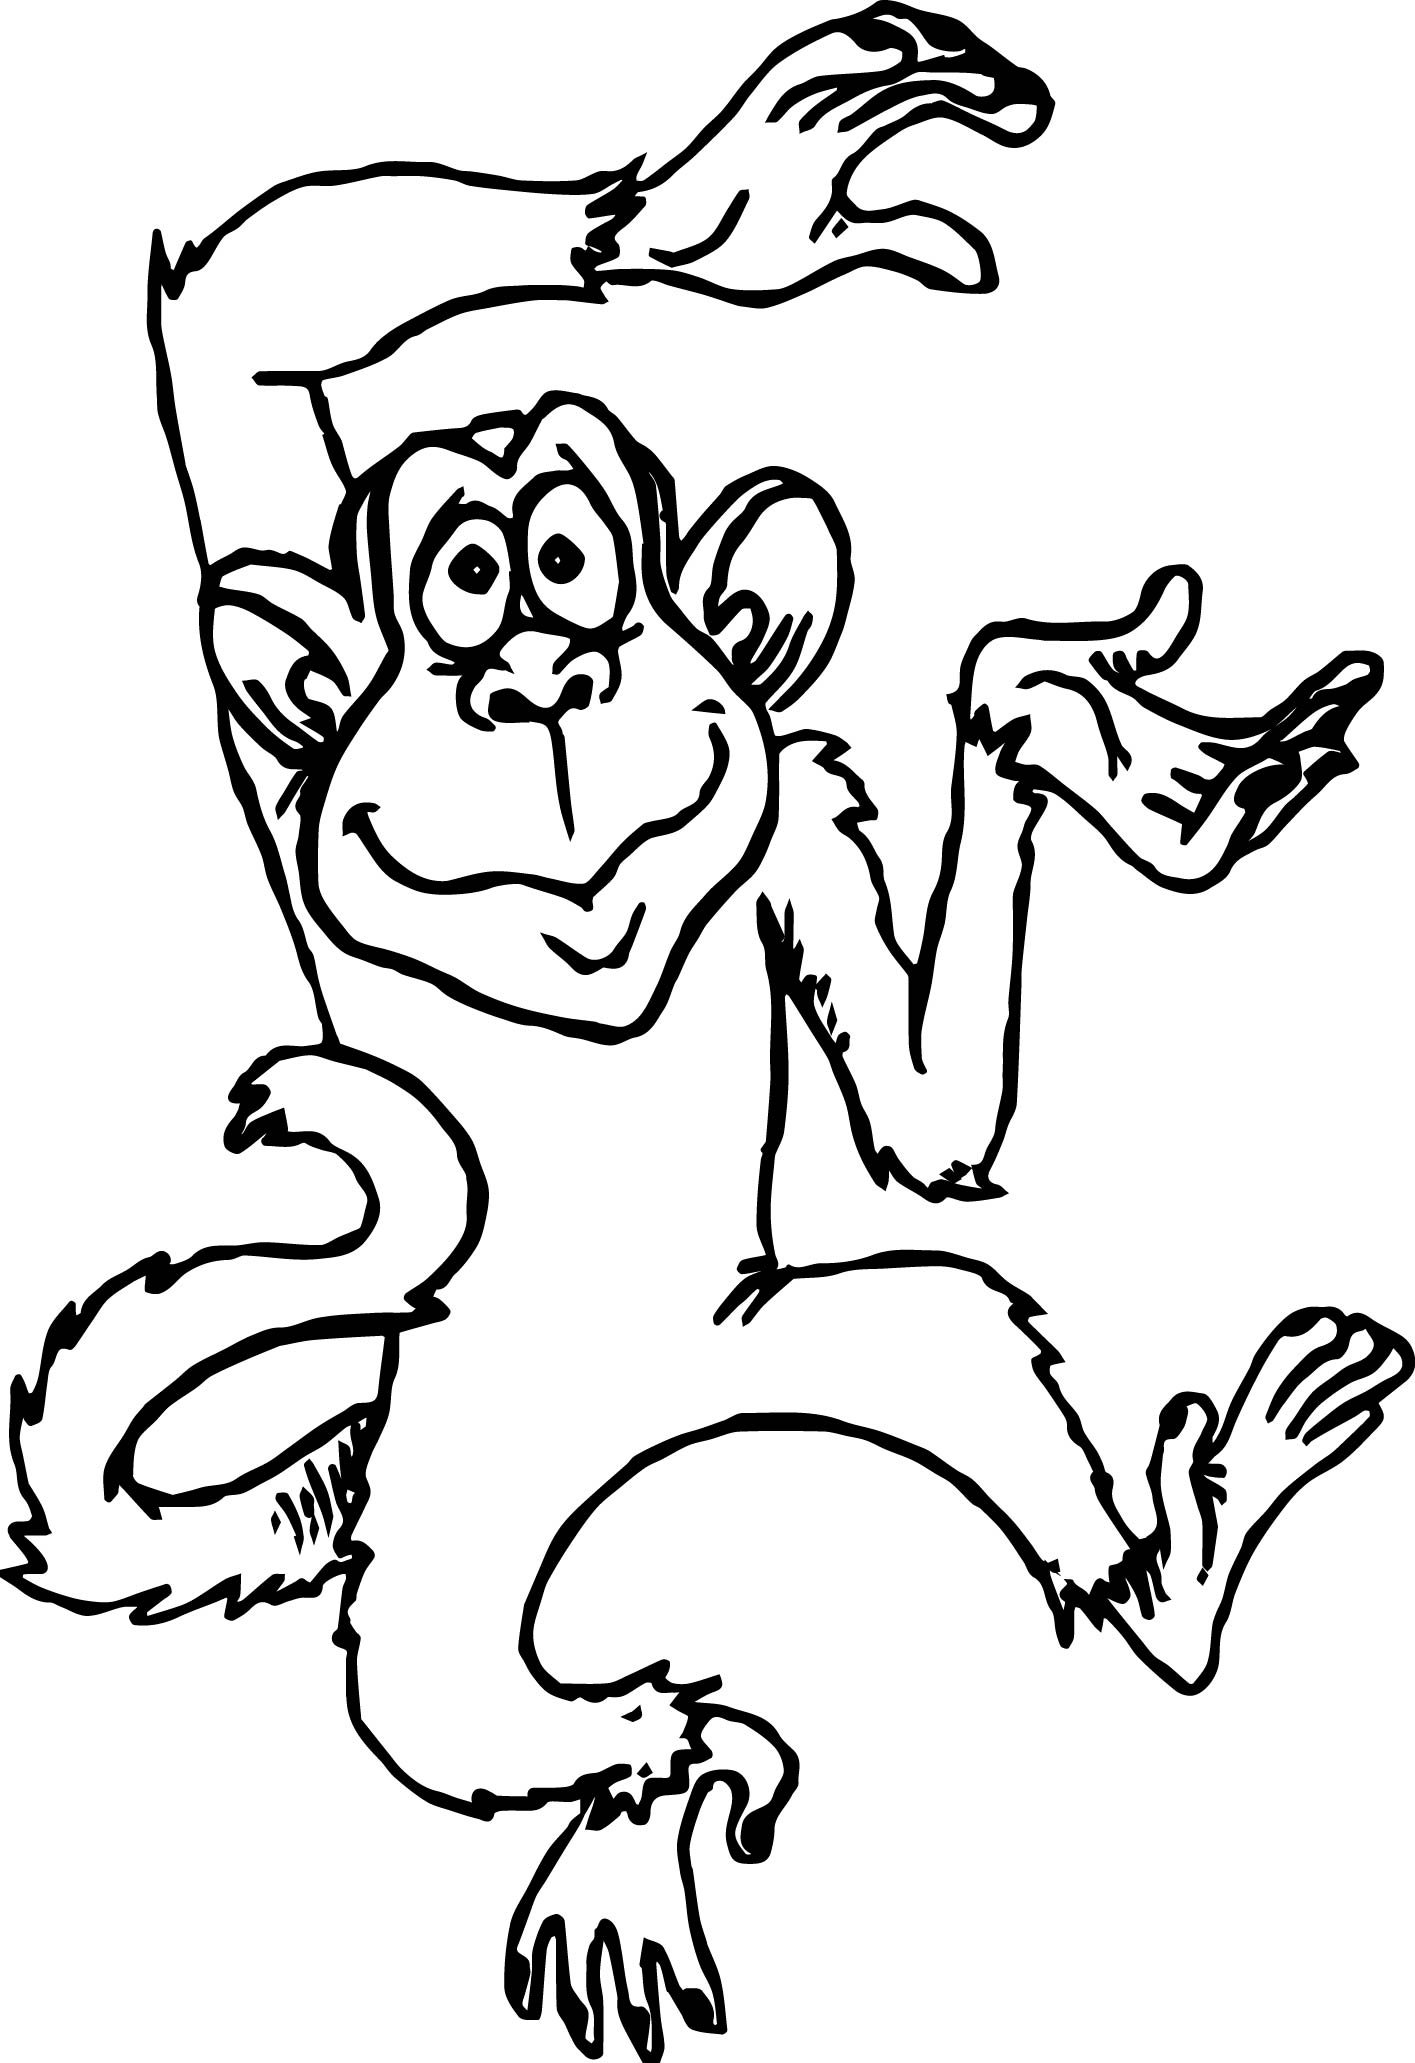 cute monkey cartoons monkey coloring page - Monkey Coloring Pages